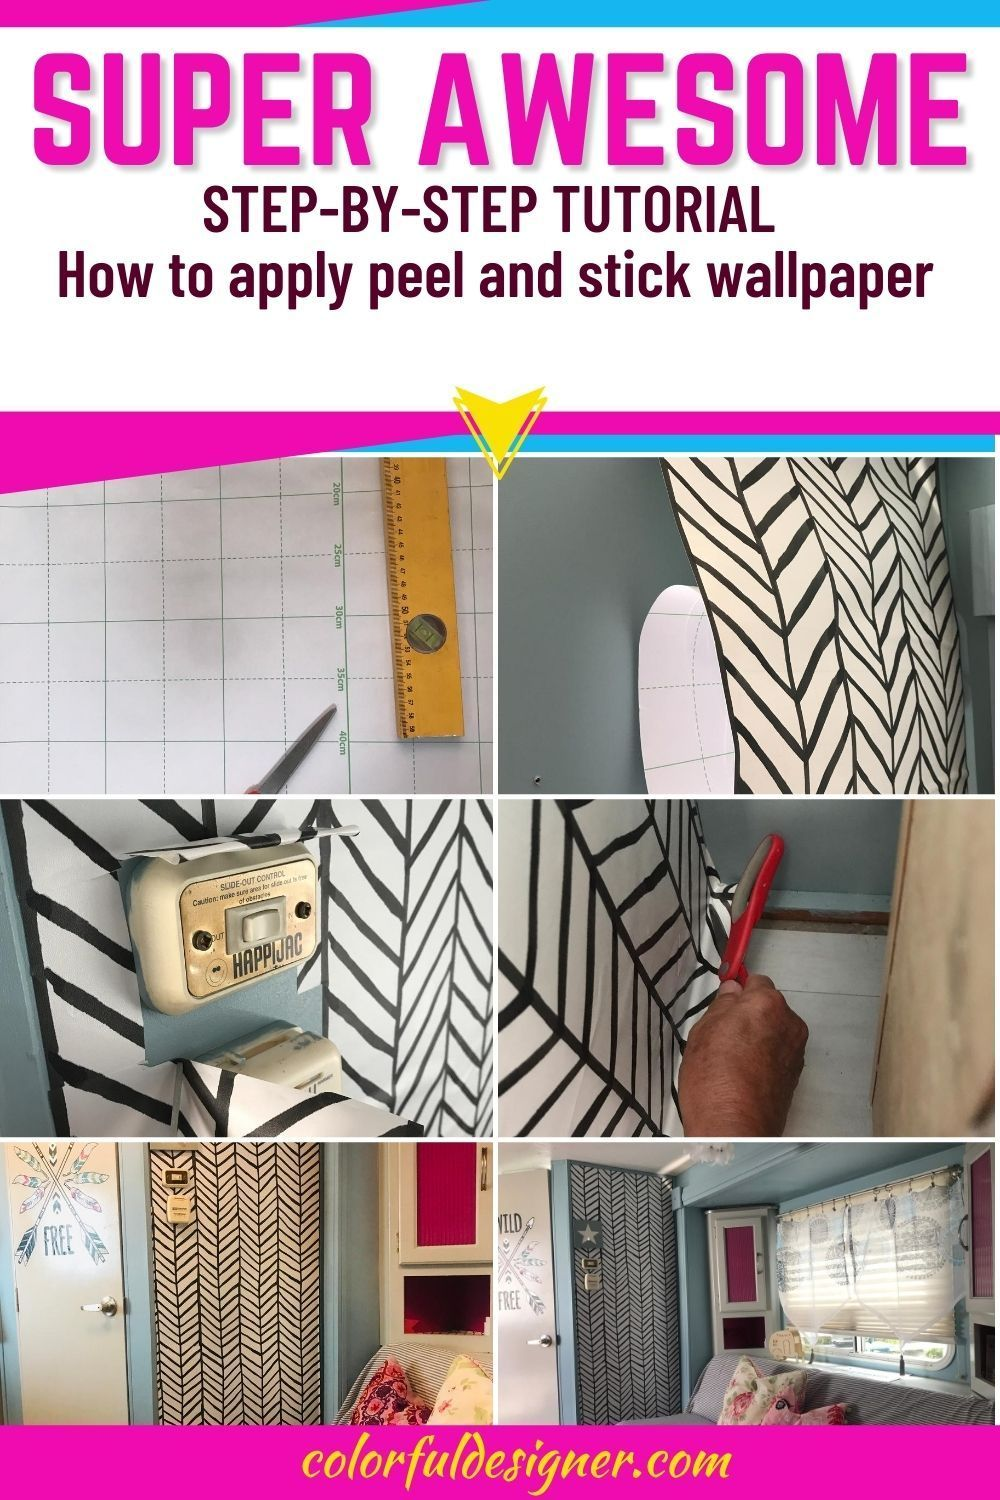 How To Apply Peel And Stick Wallpaper In Your Rv Colorful Designer Peel And Stick Wallpaper Rv Wallpaper Diy Remodel